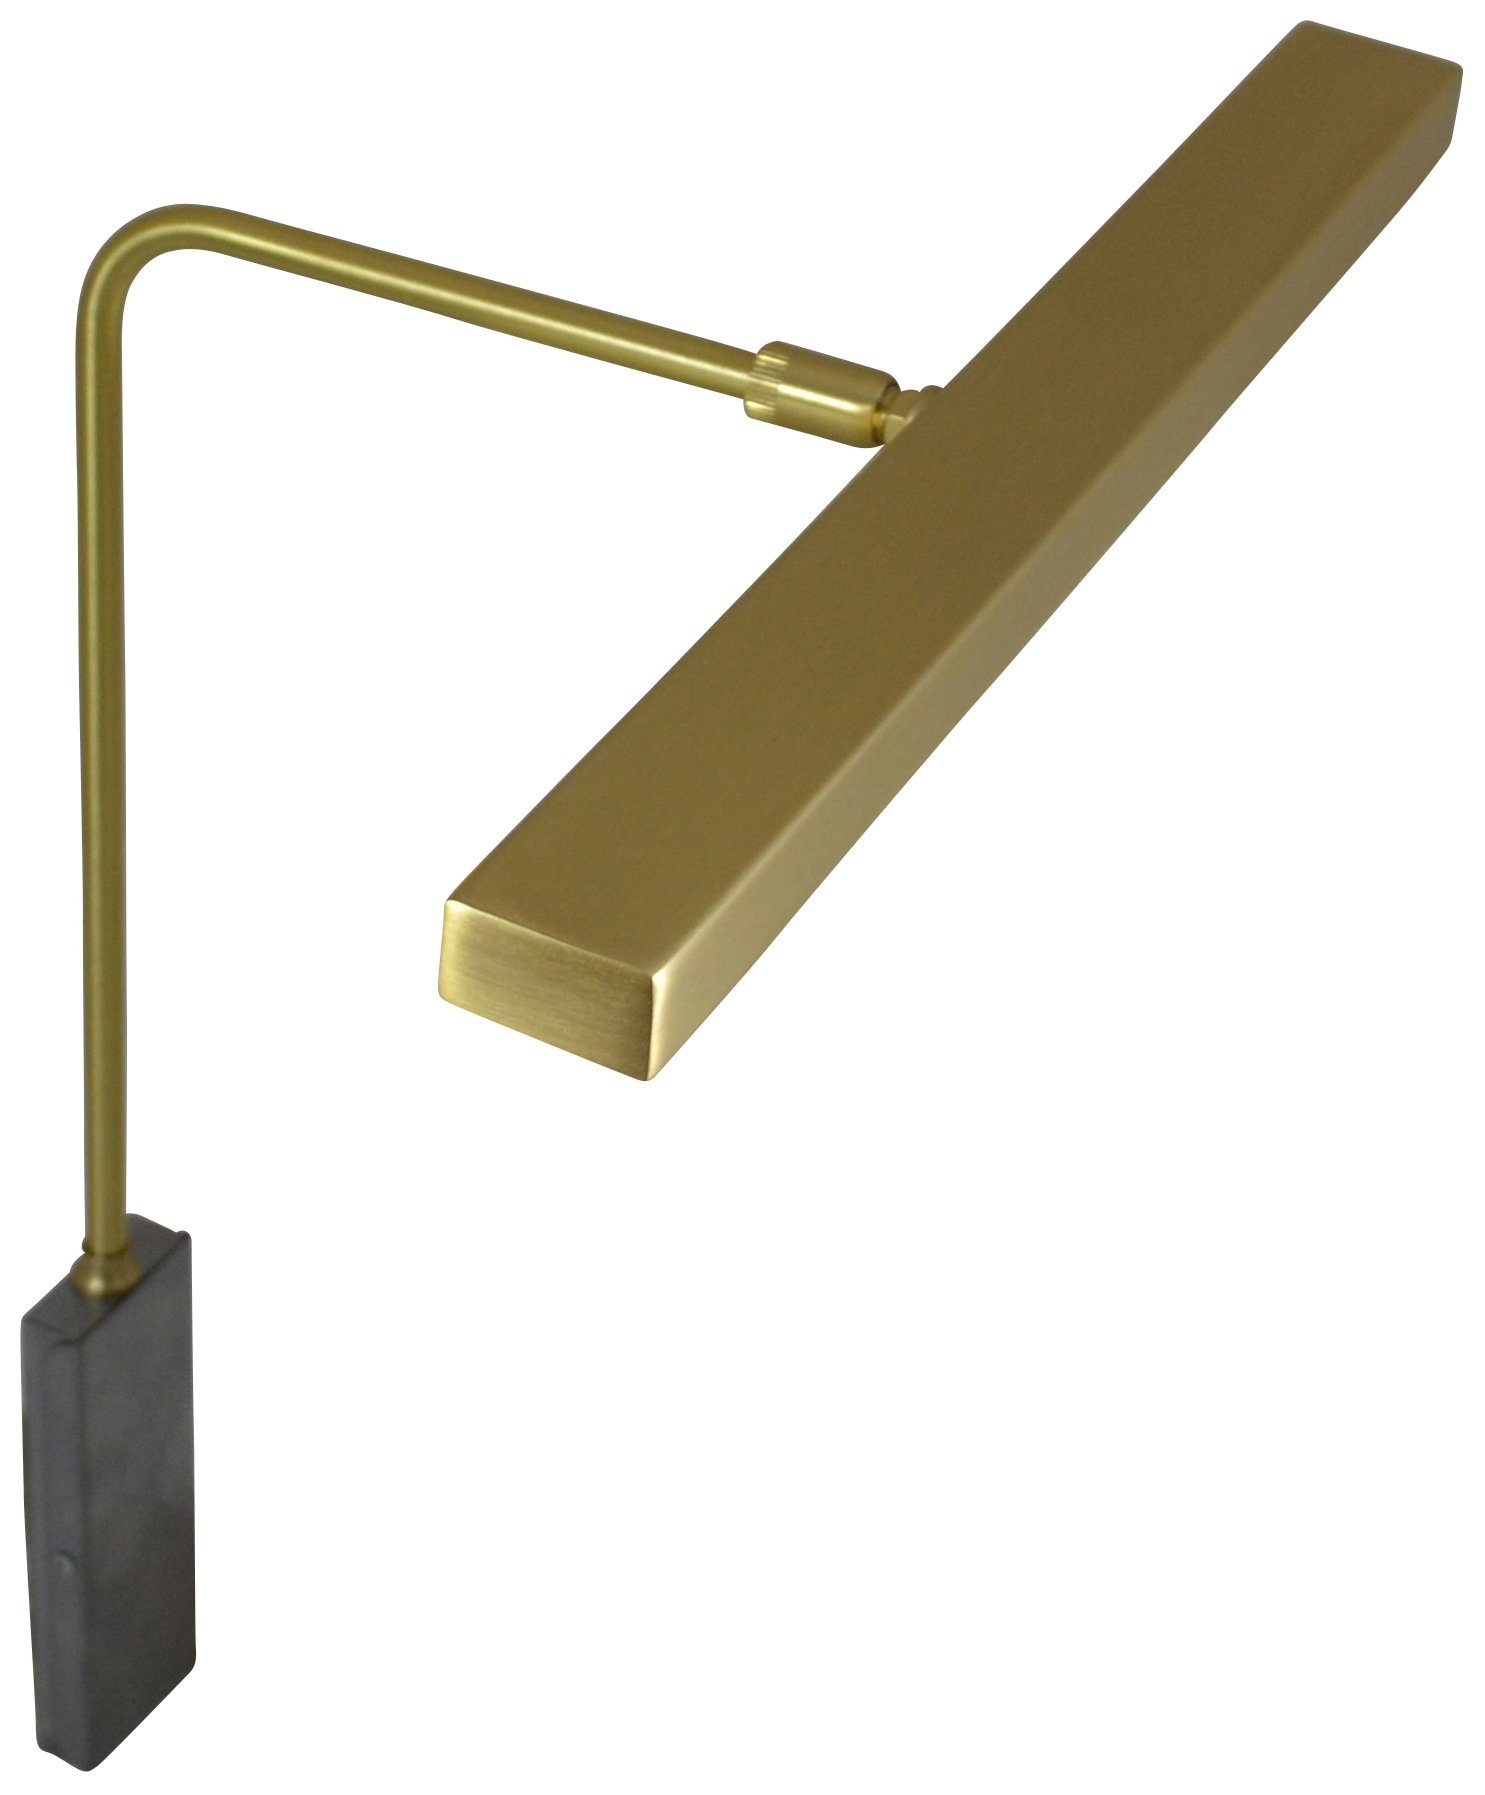 House of Troy HLEDZ12-51 Horizon LED Picture Light, 12'', Satin Brass by House of Troy